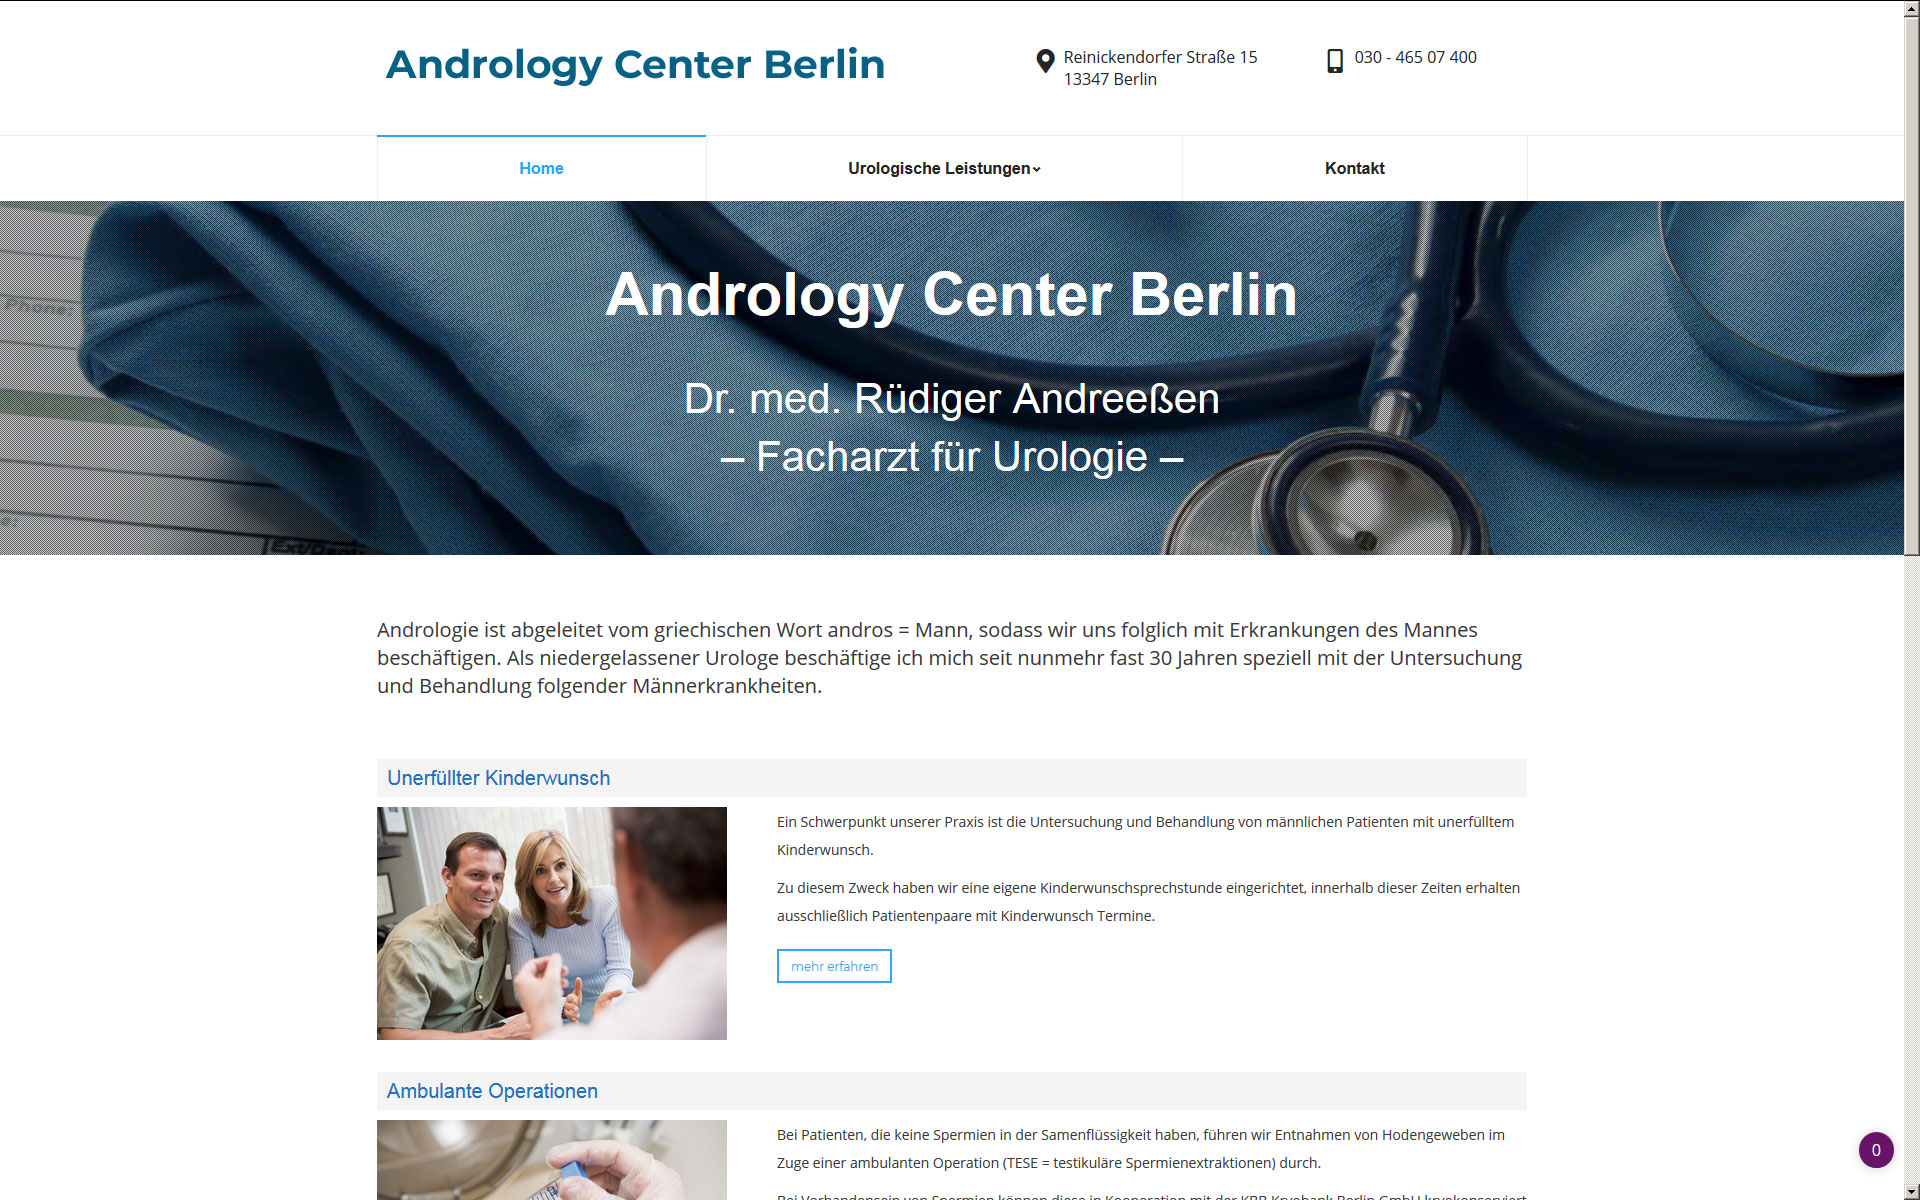 Andrology Center Berlin Website